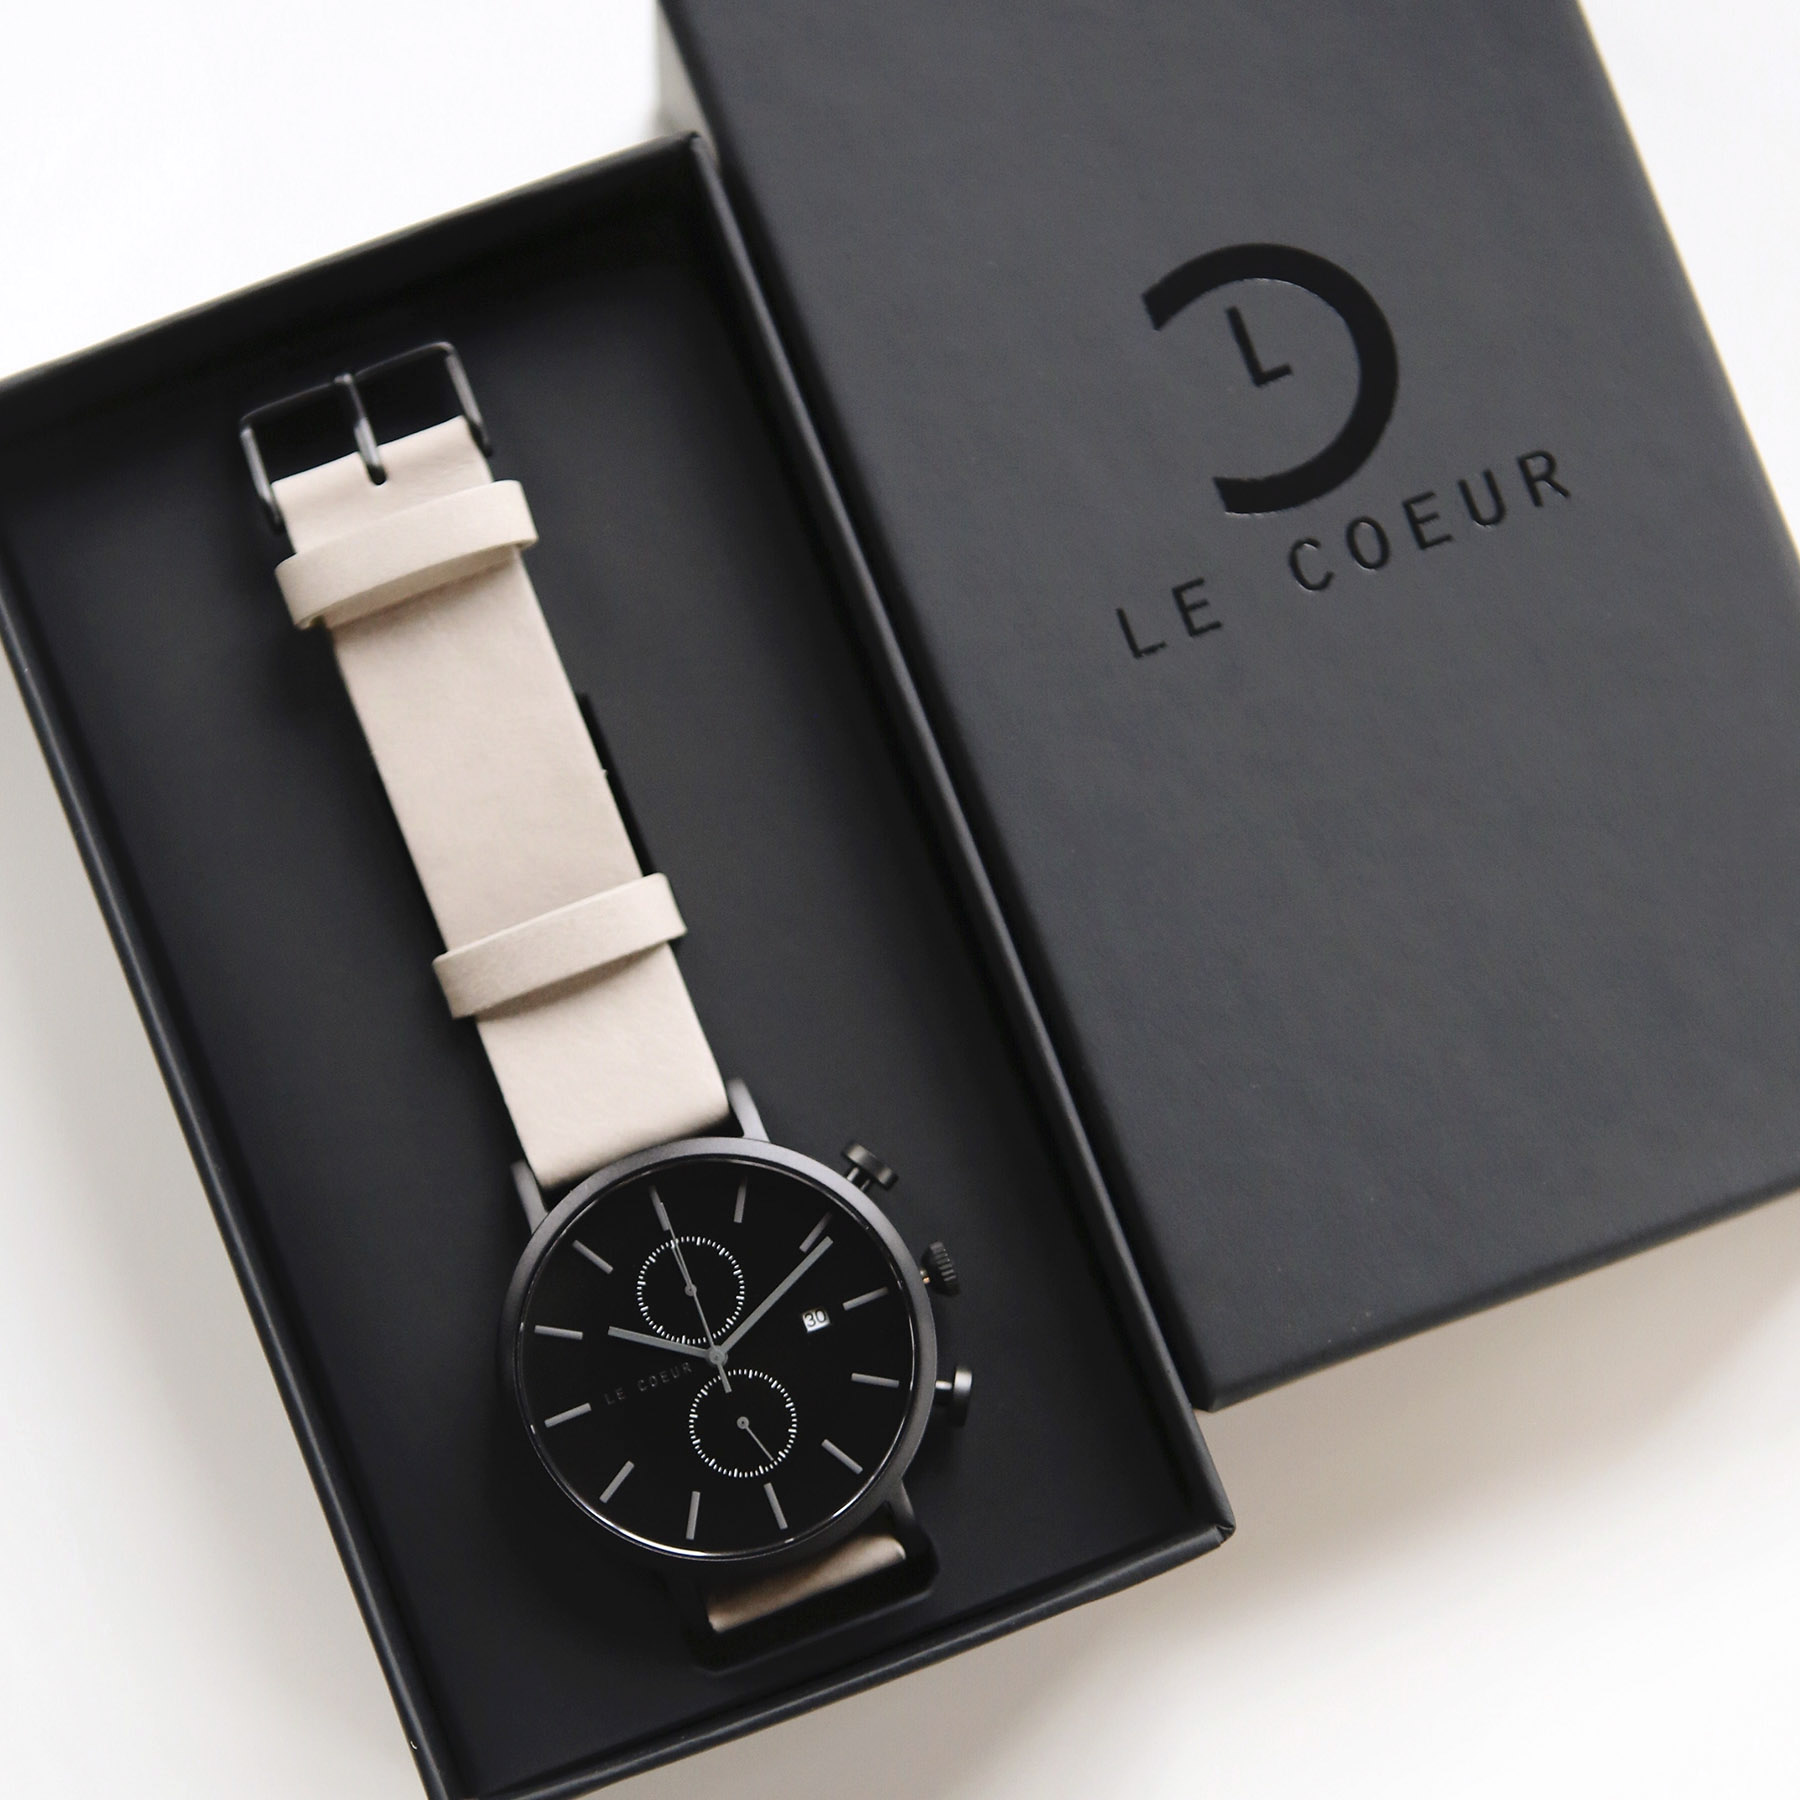 Le Coeur Black and Grey Chicago Chronograph5.jpg